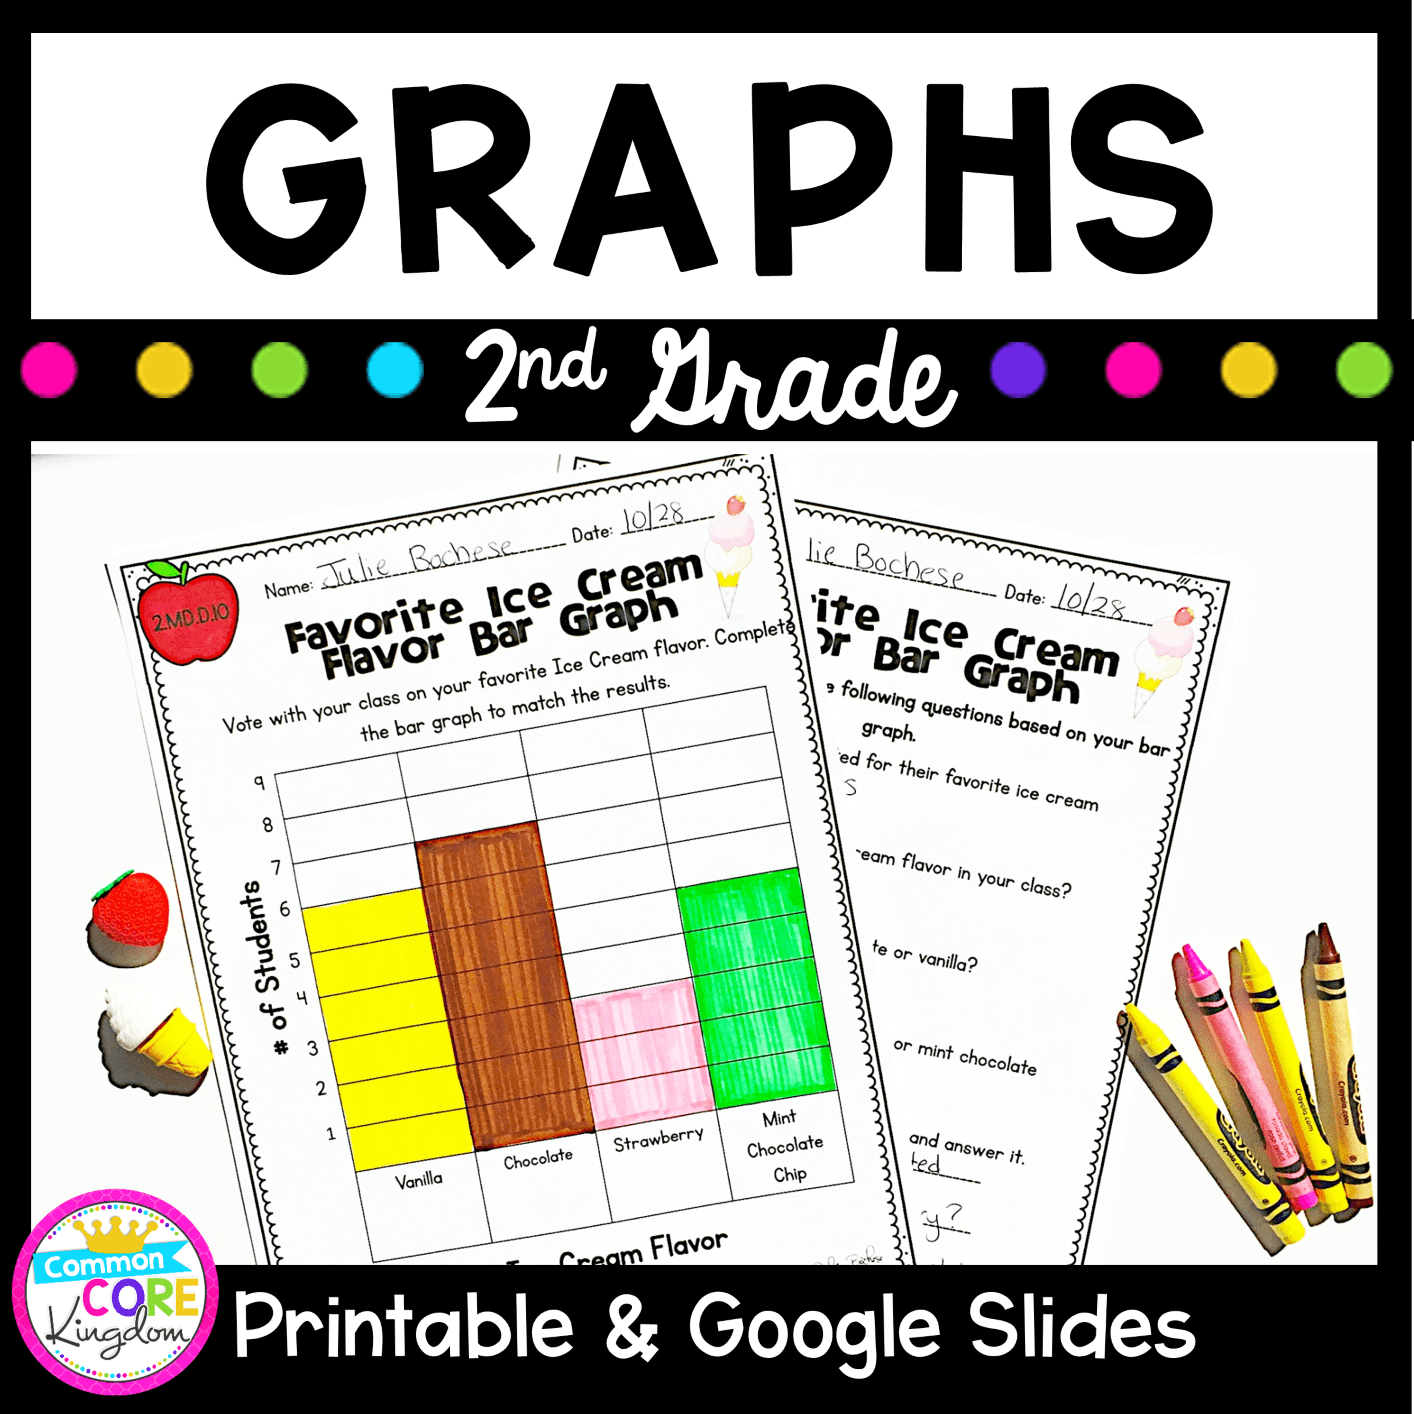 Graphs - 2nd Grade 2.MD.D.10 with PDF \u0026 Google Slides Distance Learning  Pack   Common Core Kingdom [ 1414 x 1414 Pixel ]